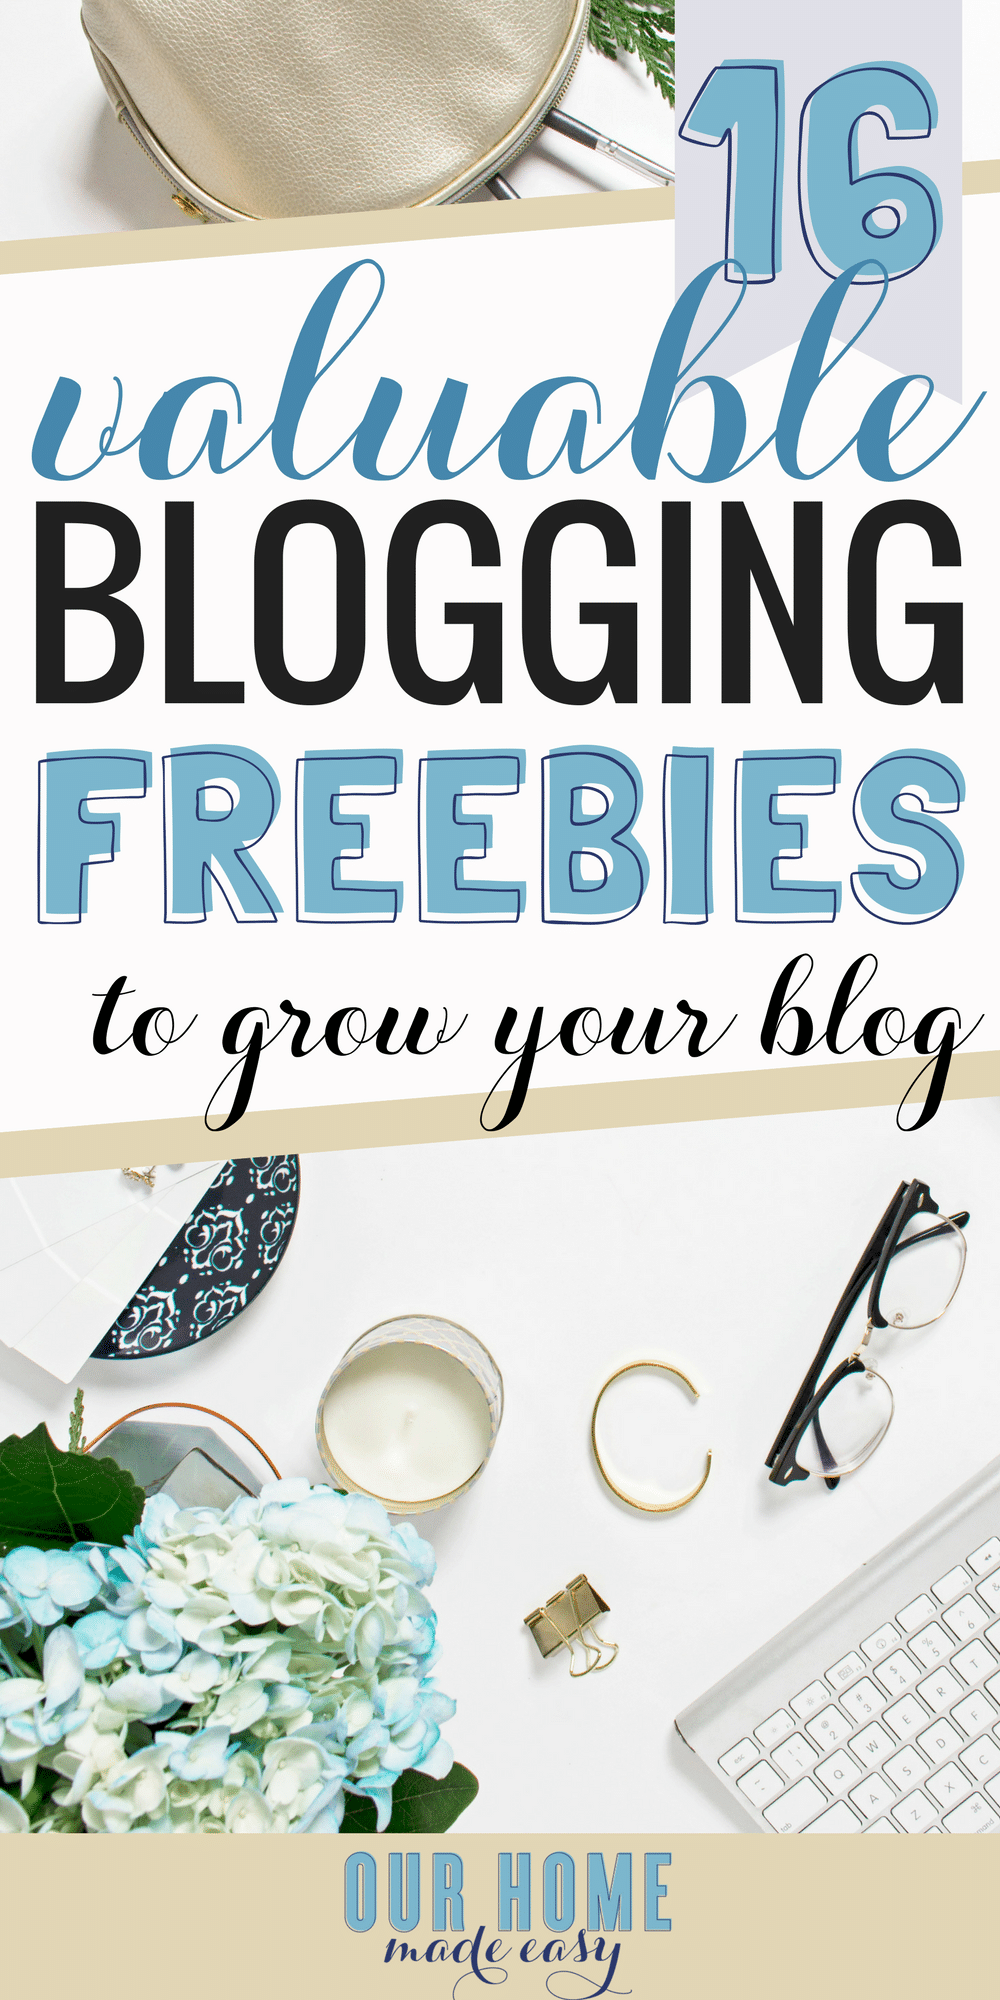 Want the best free blogging resources? I've found 16 of my favorite from successful bloggers! Click here to learn from the best-- for free! #blogging #howtoblog #freebies